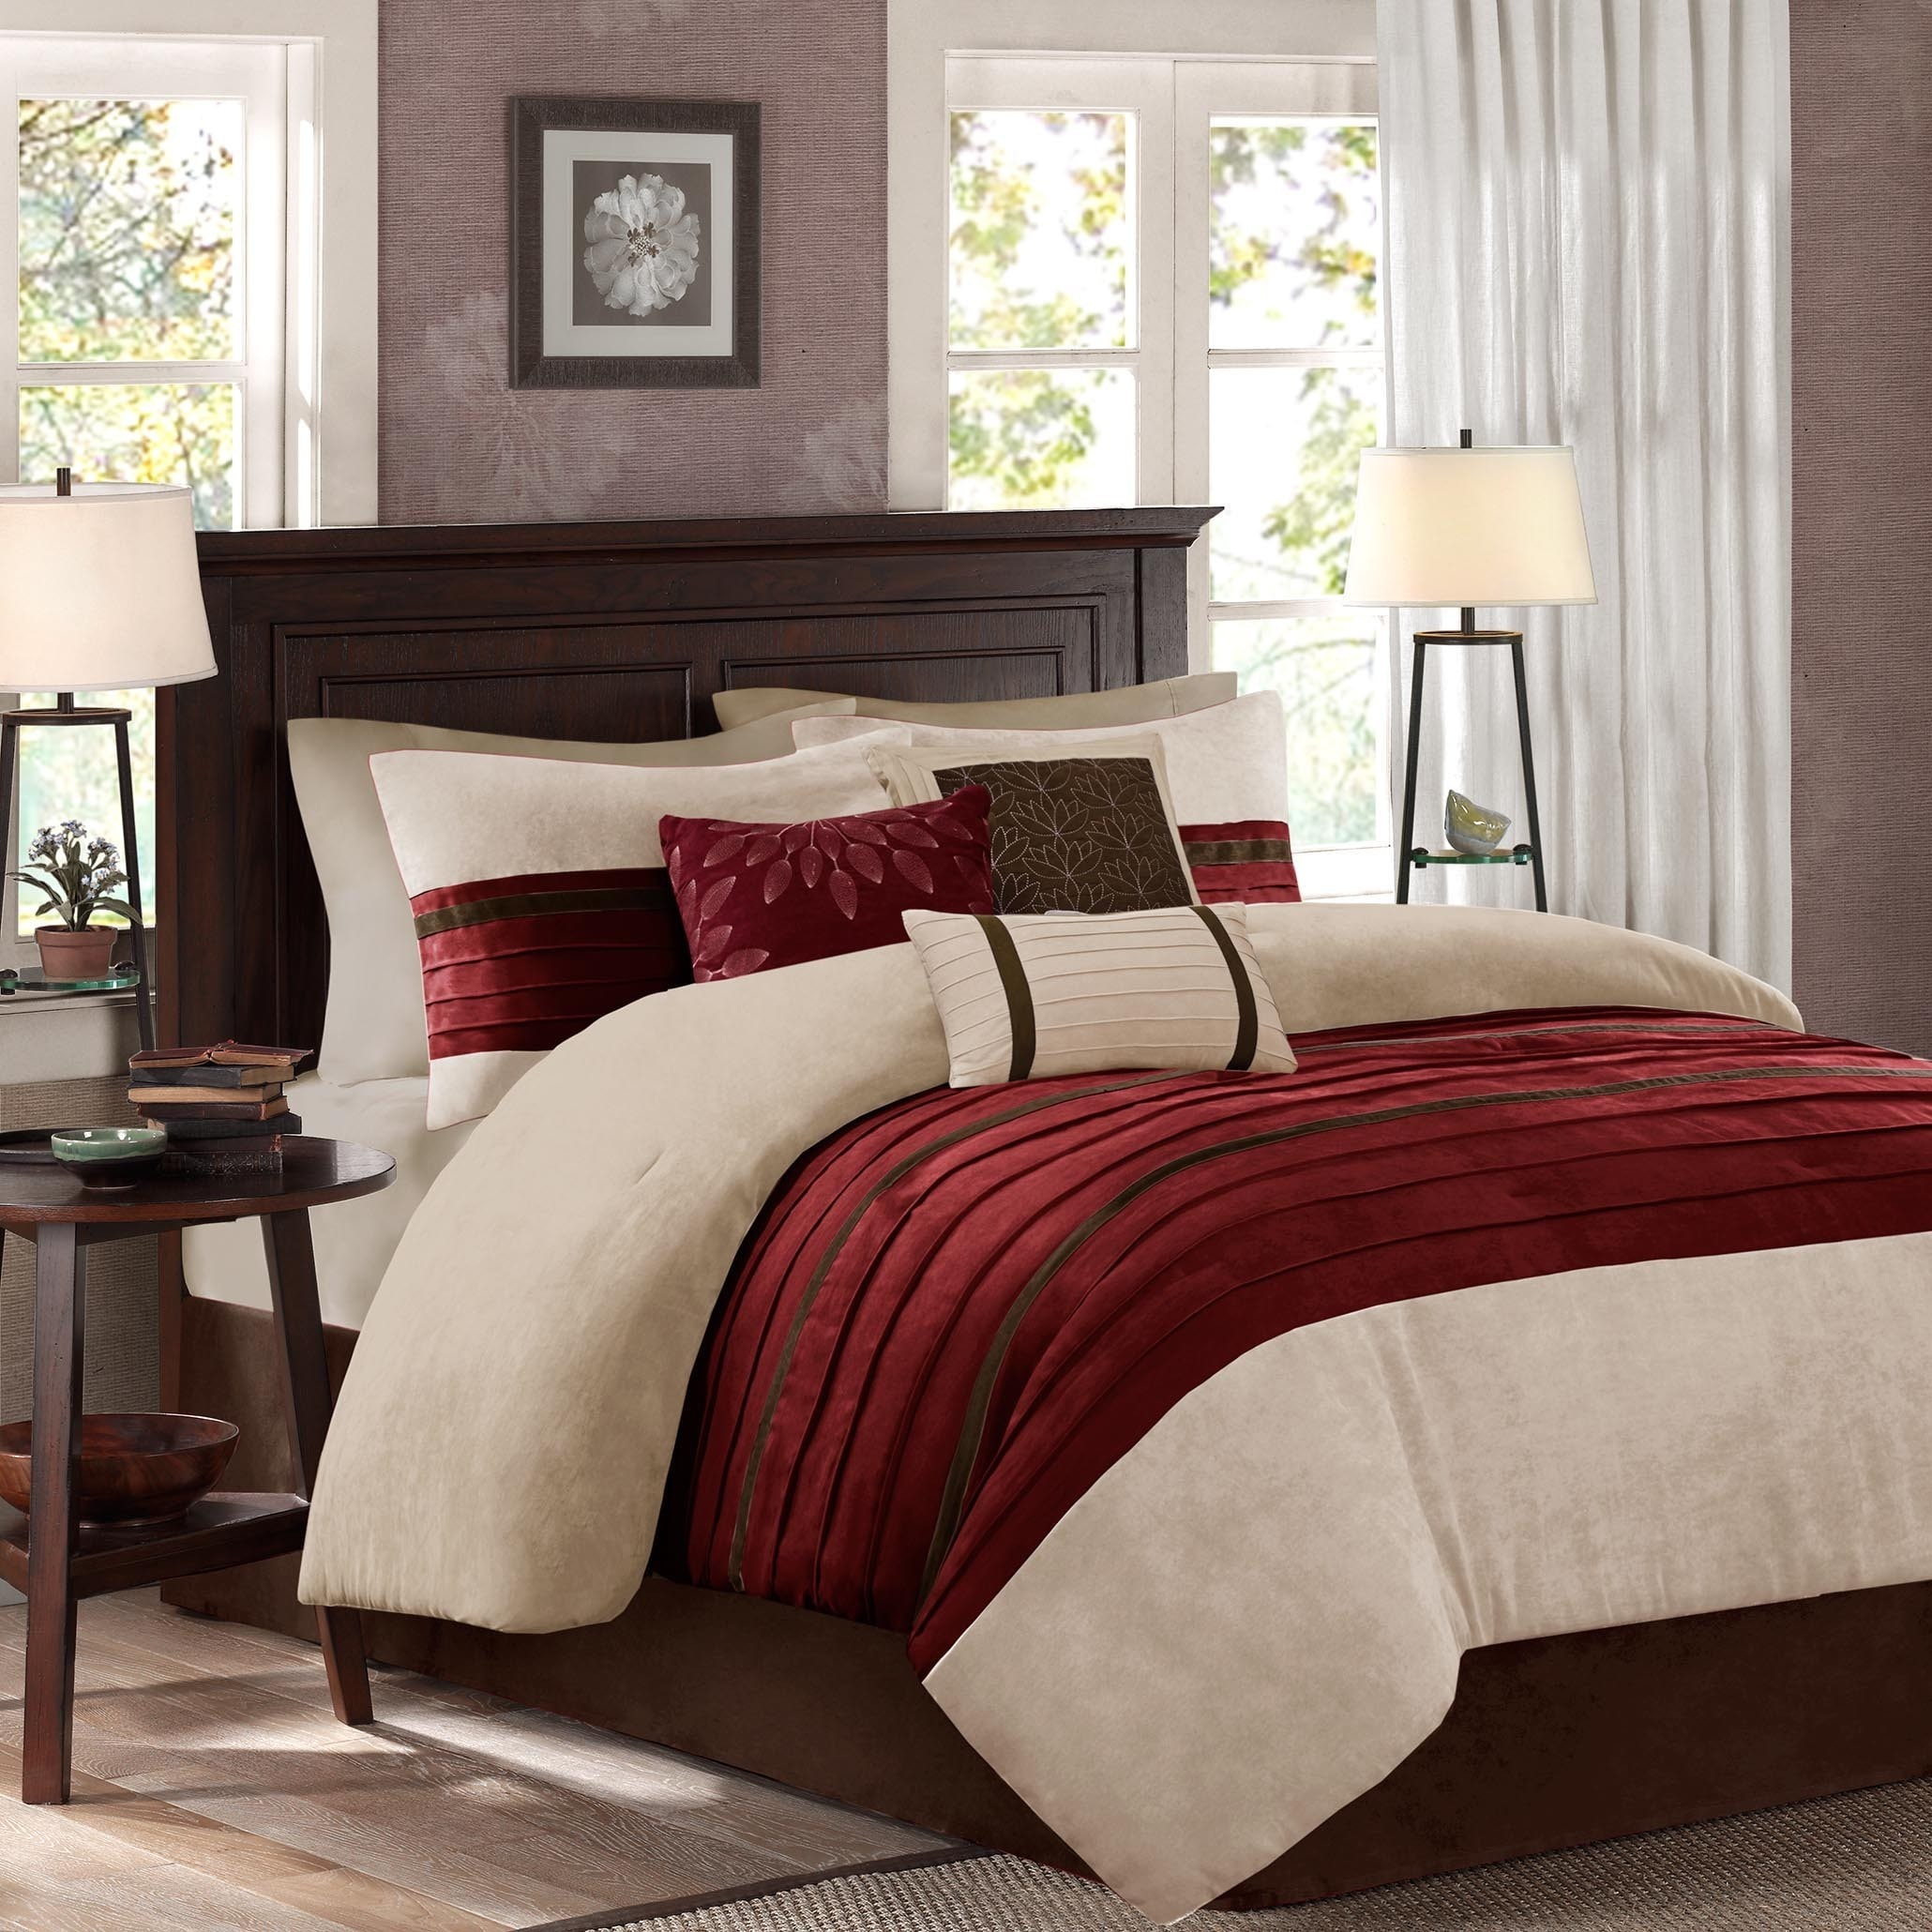 overstock trawler comforter red bedding bath product nautica shipping today set free